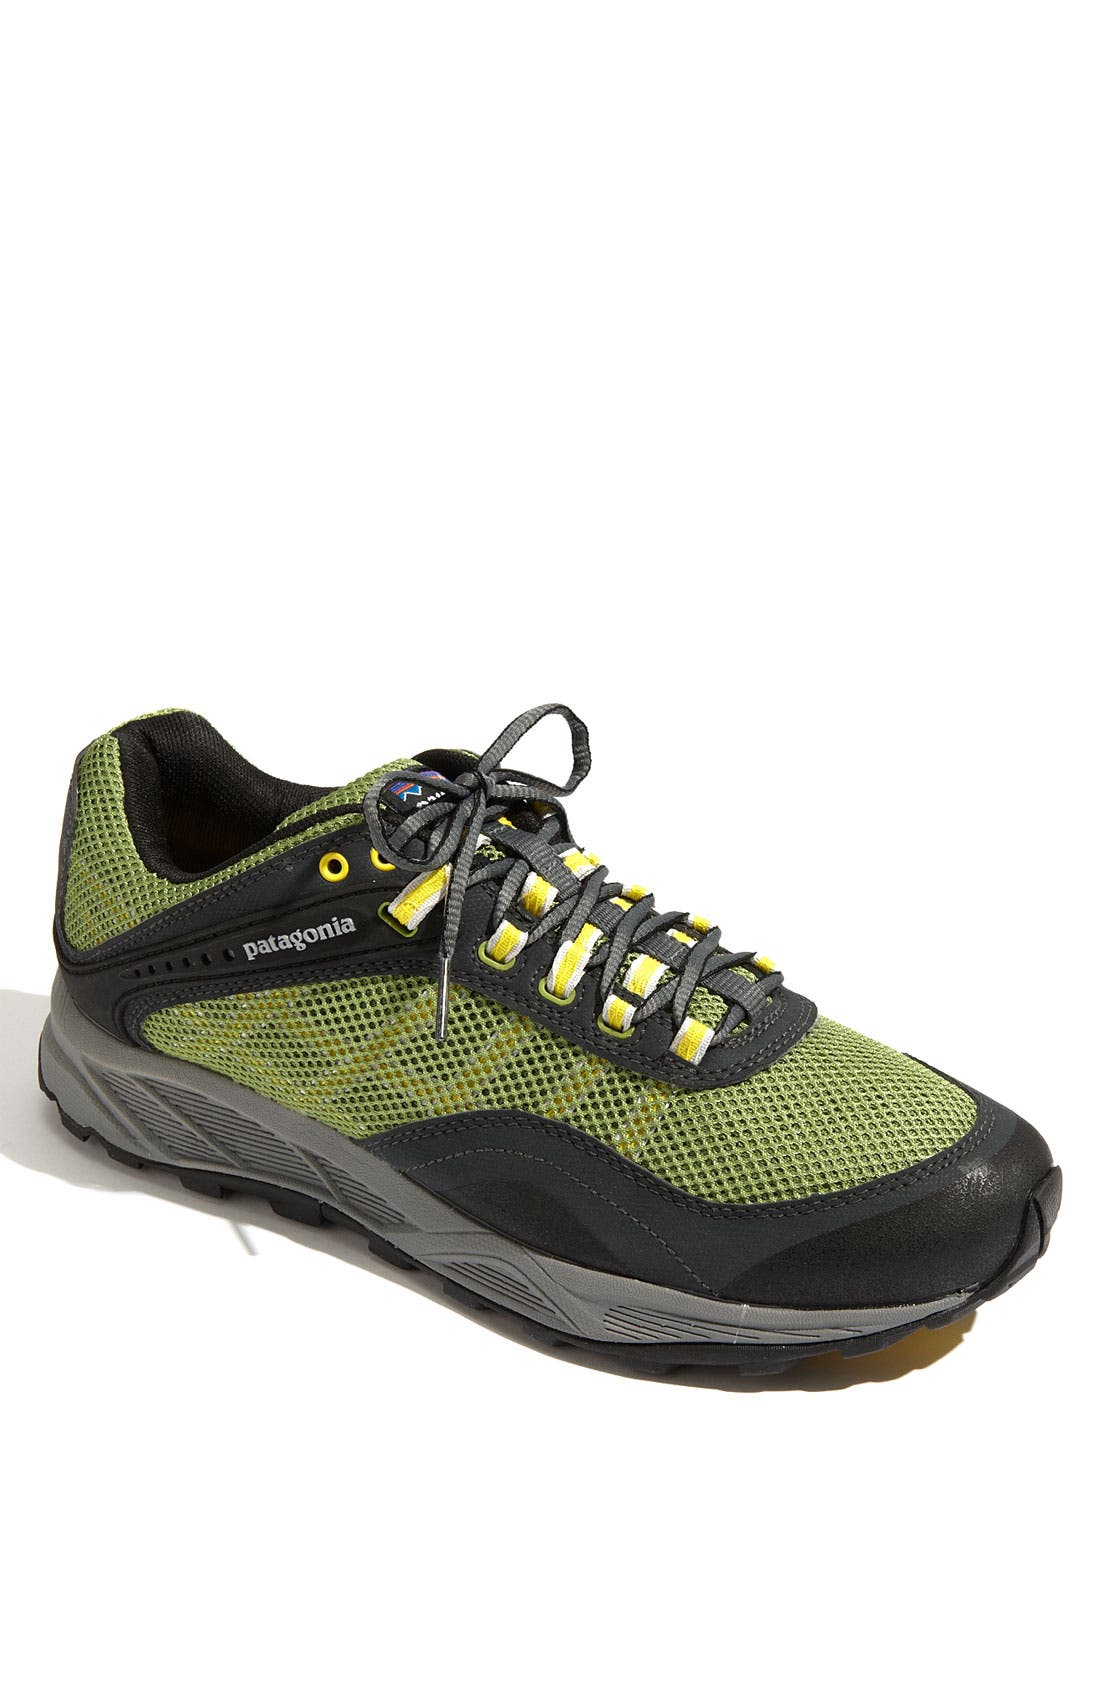 Alternate Image 1 Selected - Patagonia 'Specter' Trail Running Shoe (Men)